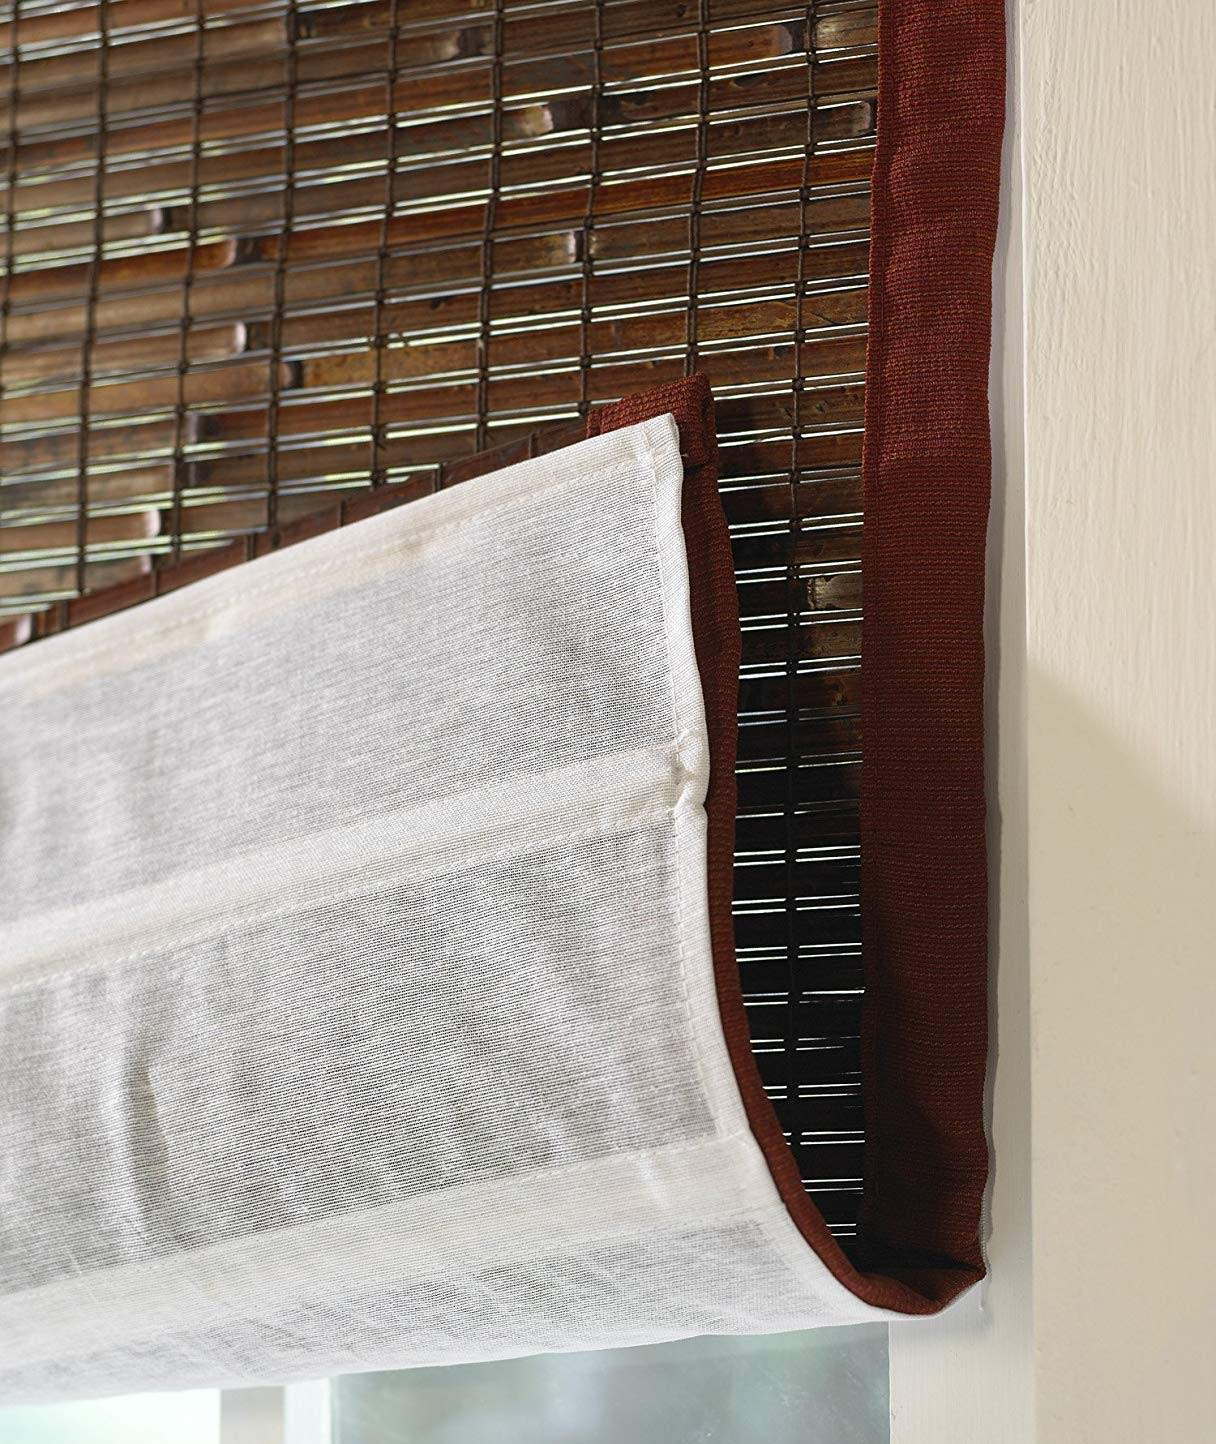 Blinds Emporium Of GA Privacy Liner for Use with Bamboo and Roman Shades (Shade Not Included) by Blinds Emporium Of GA